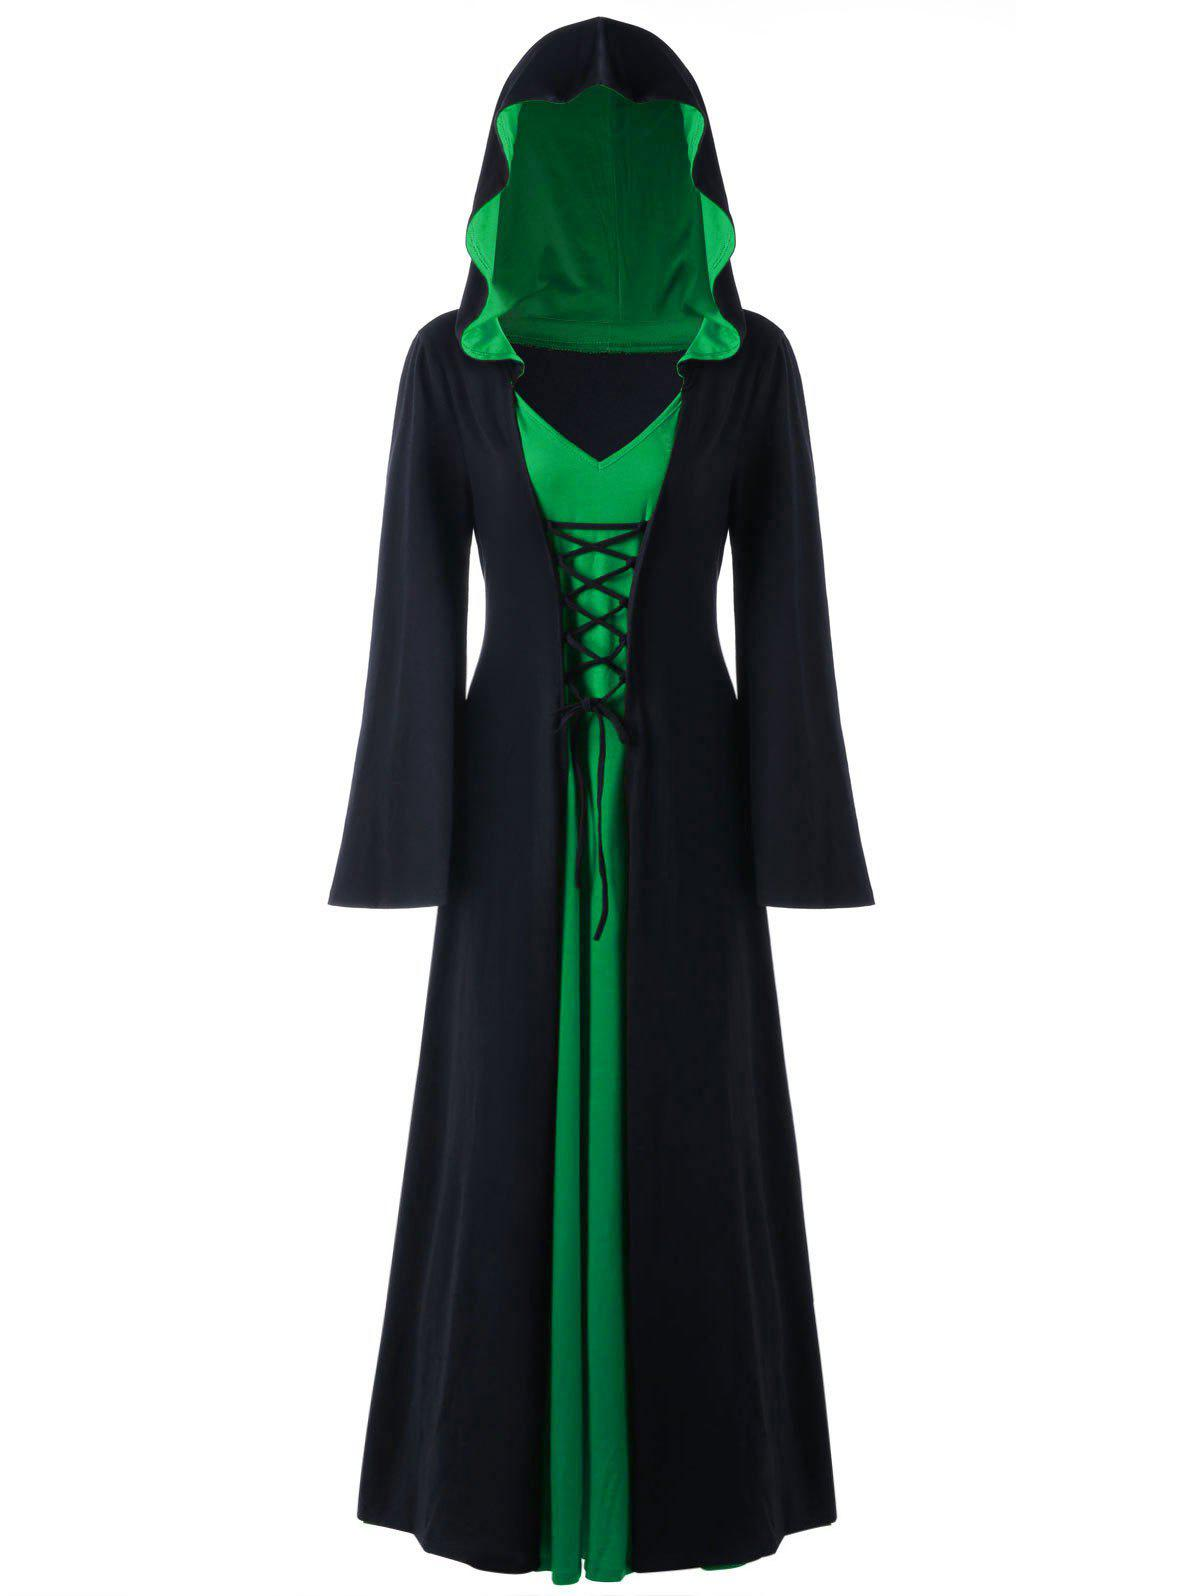 Plus Size Hooded Lace Up Maxi Dress - BLACK/GREEN XL